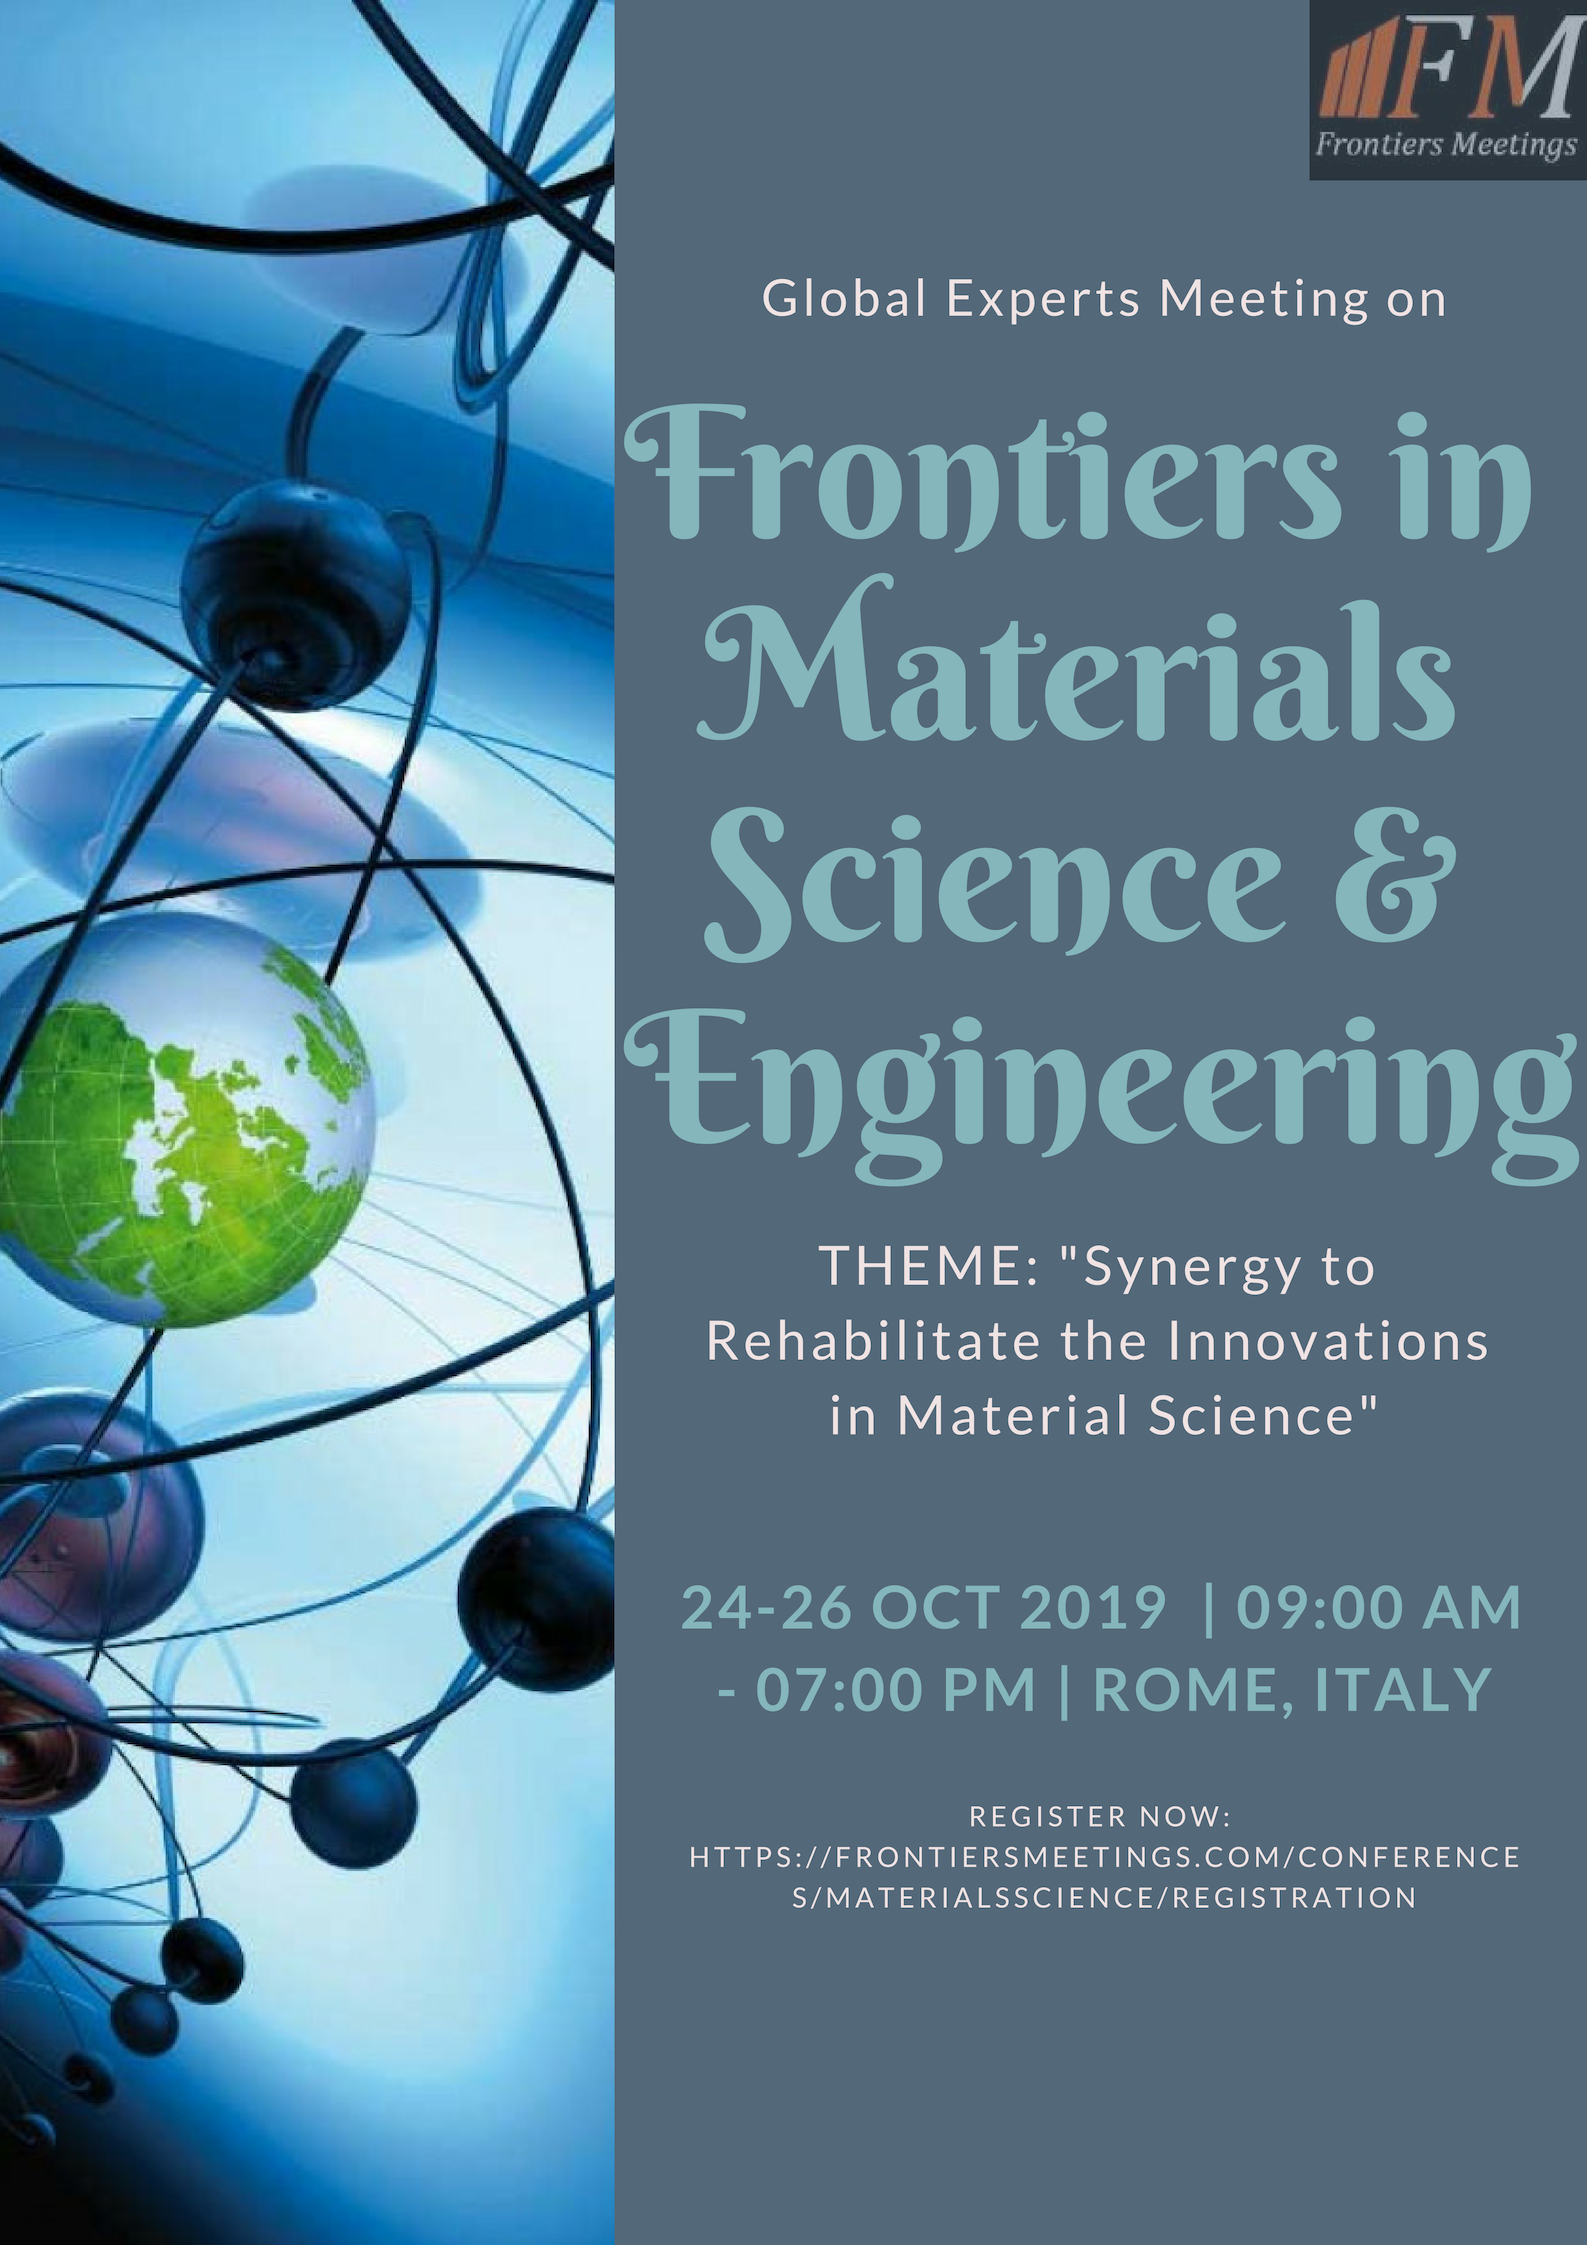 Global Experts Meeting on Frontiers in Materials Science & Engineering, Rome, Italy